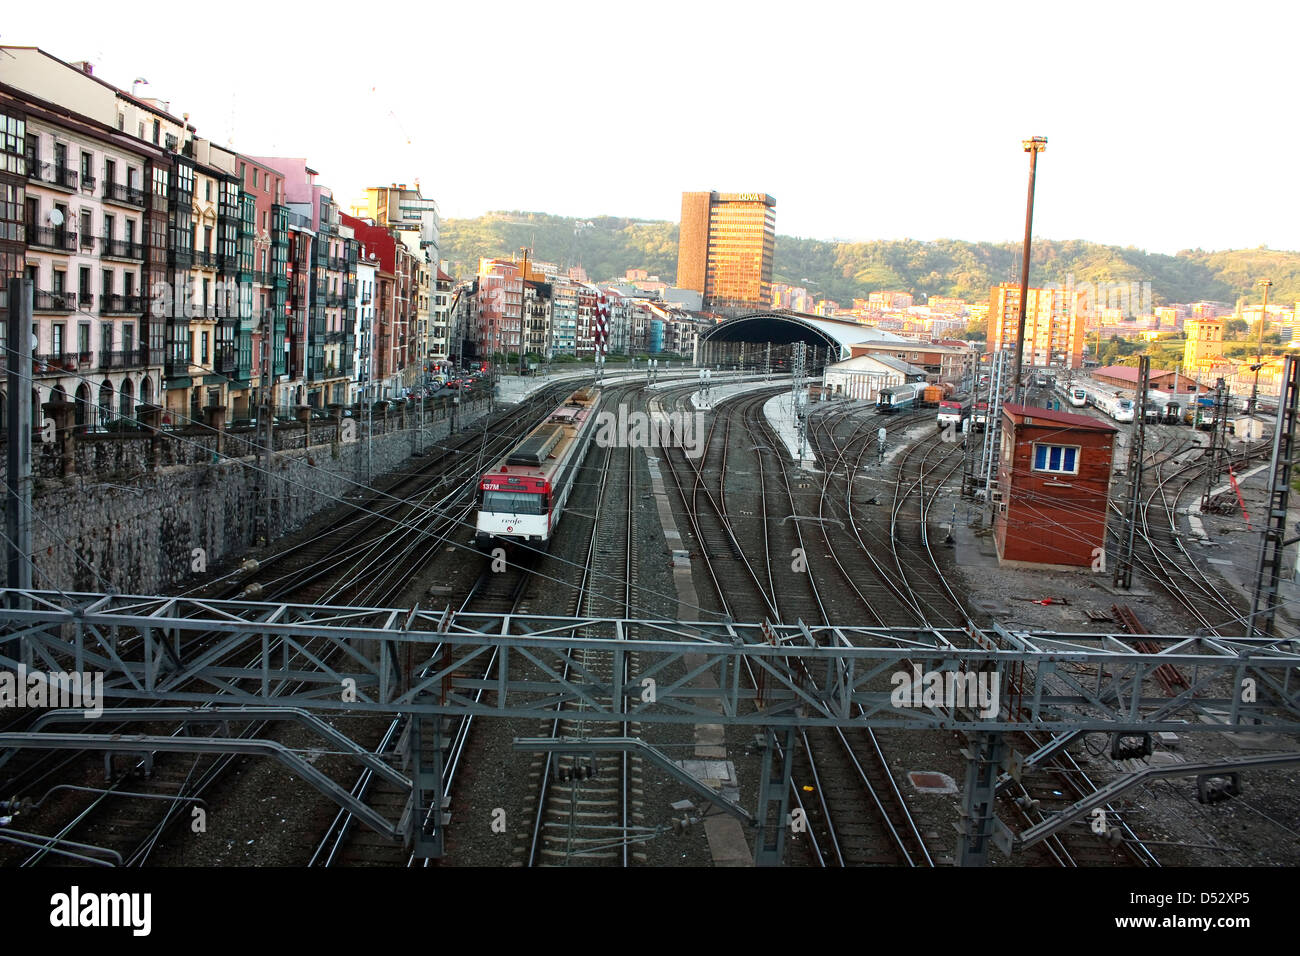 Railroad tracks and catenary, with crossings of roads and sidewalks. Bilbao, Spain. Stock Photo